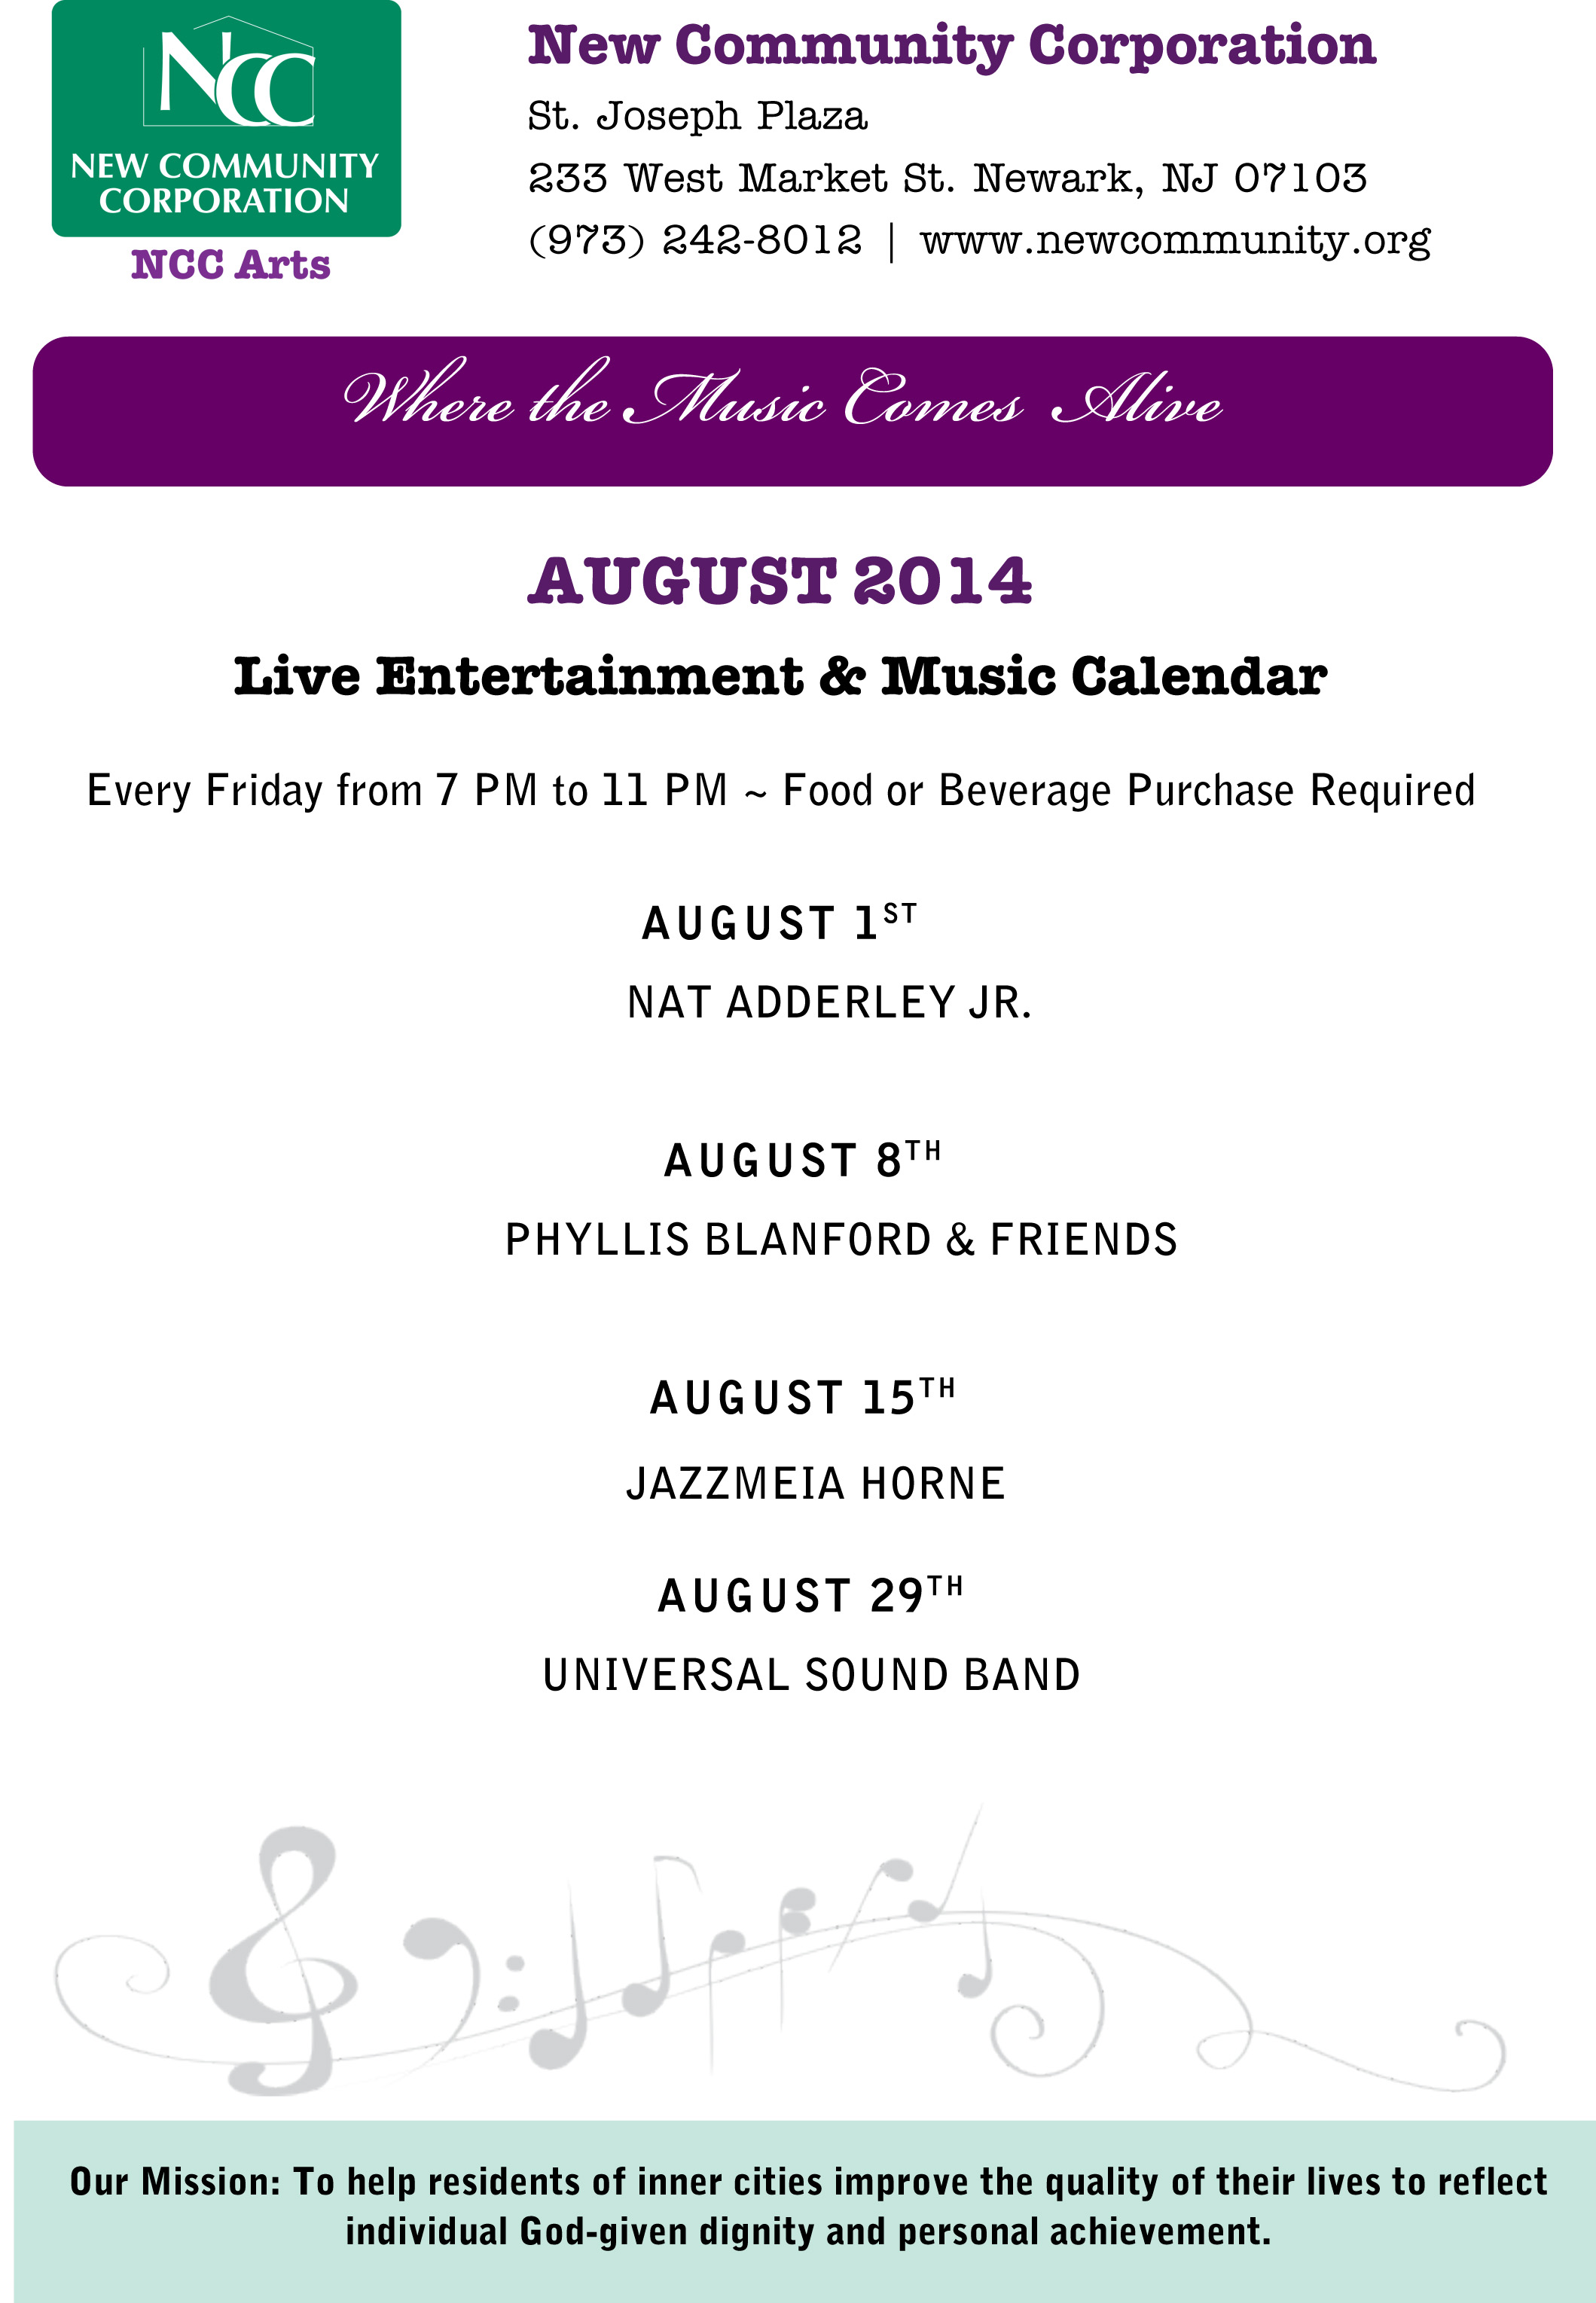 August 2014 Music Calendar The Priory New Community Corporation